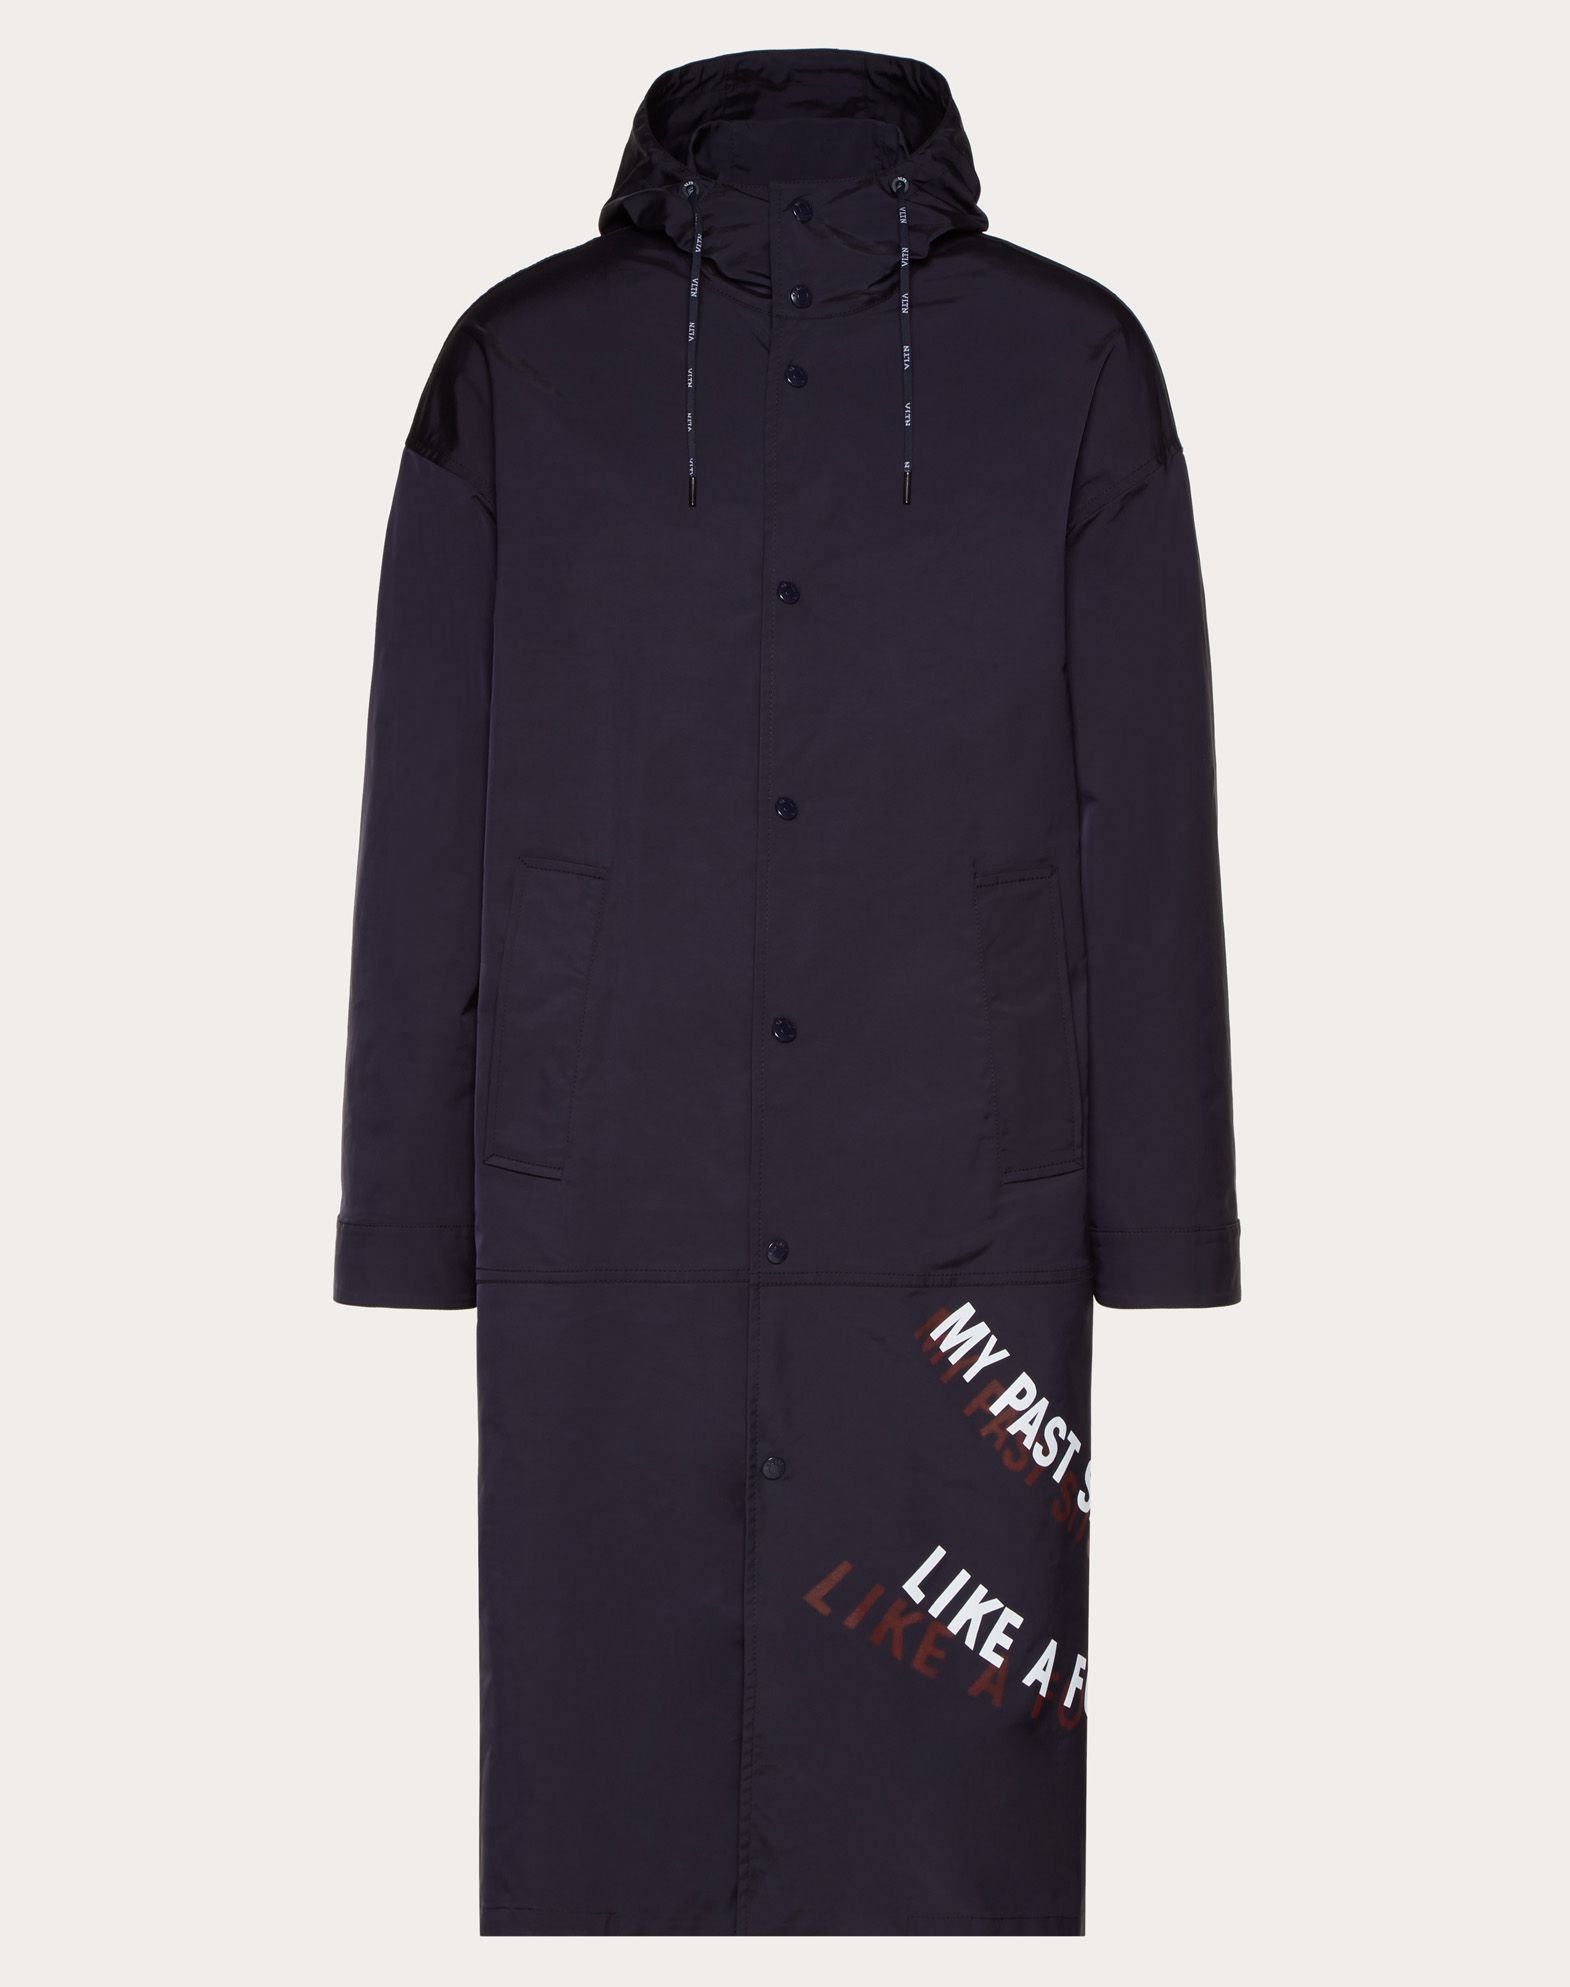 PARKA WITH HEARTBREAD/INDIA K PRINT